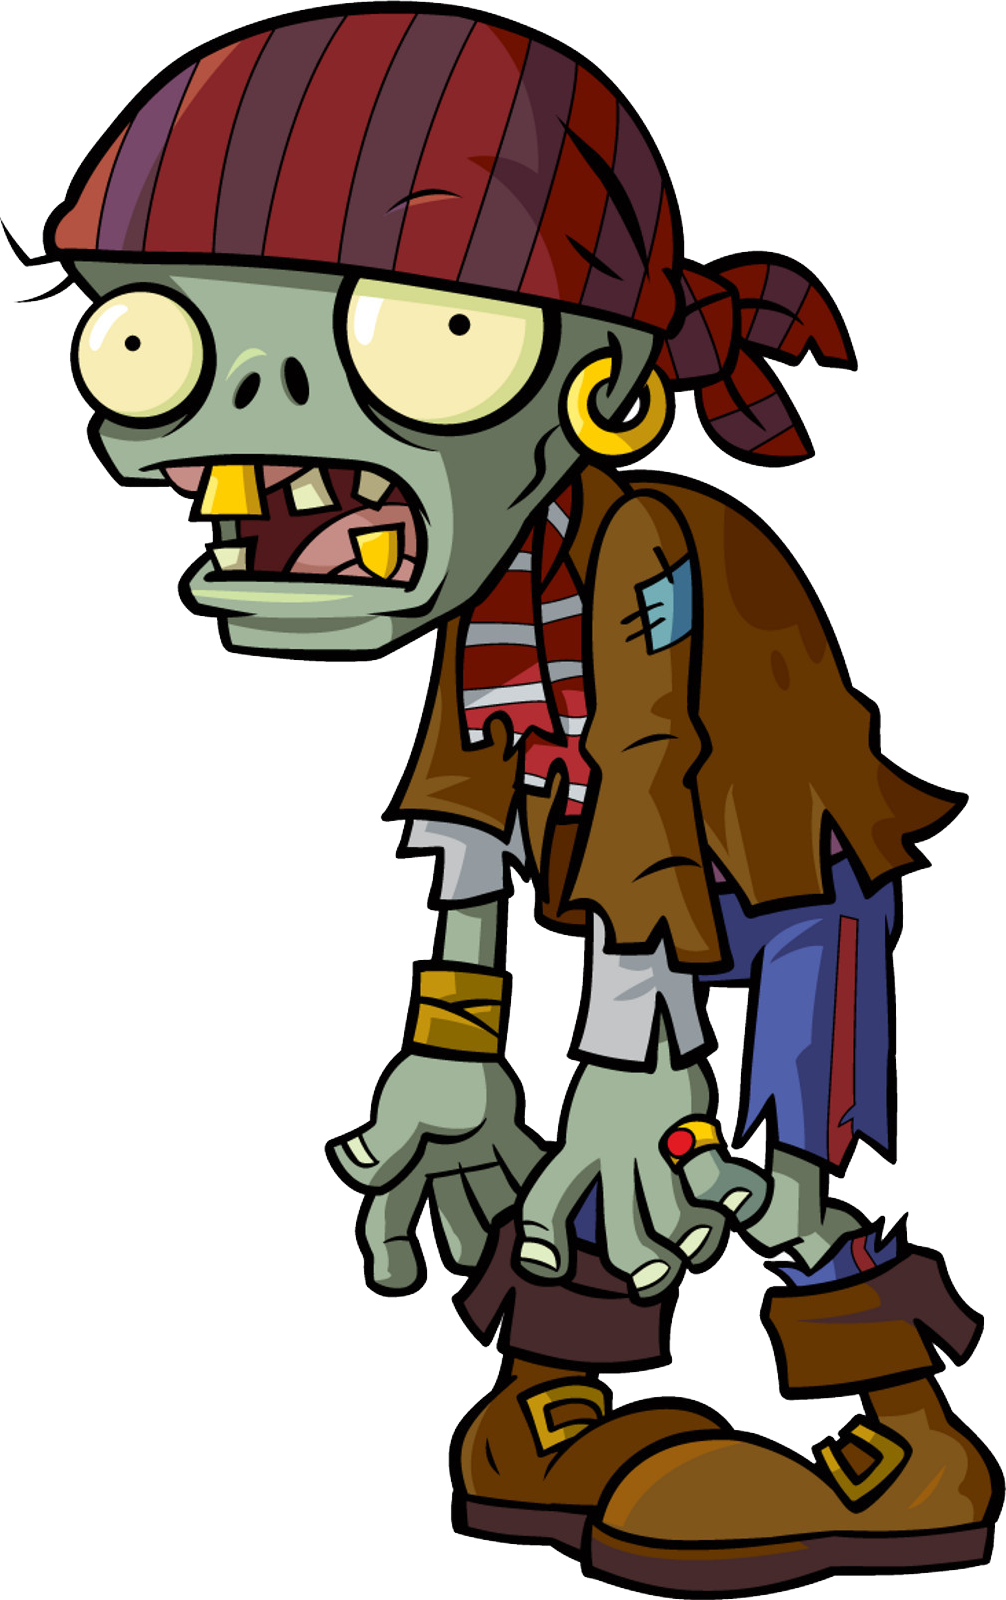 Plants vs zombies zombie png. Pin by next on